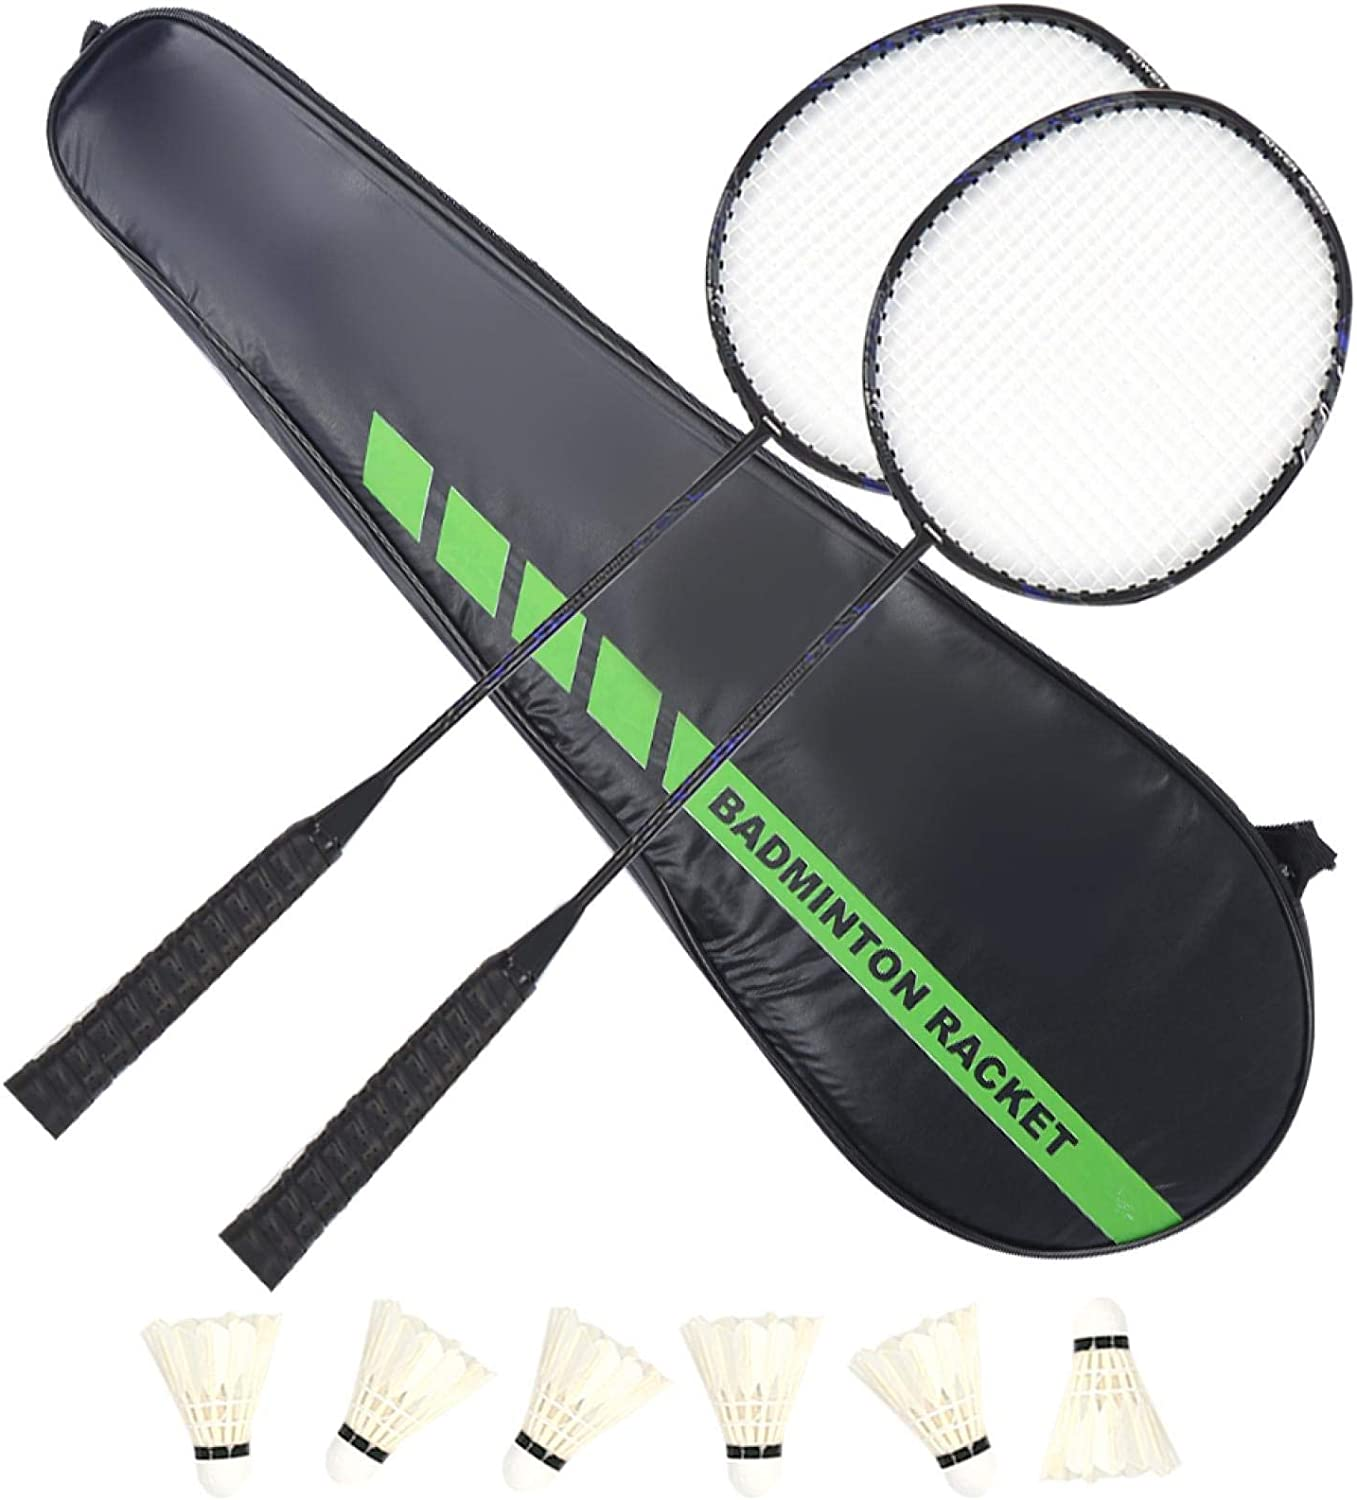 Convenient T‑Joint Badminton Be super welcome Many popular brands Racket Trai Stability Powerful